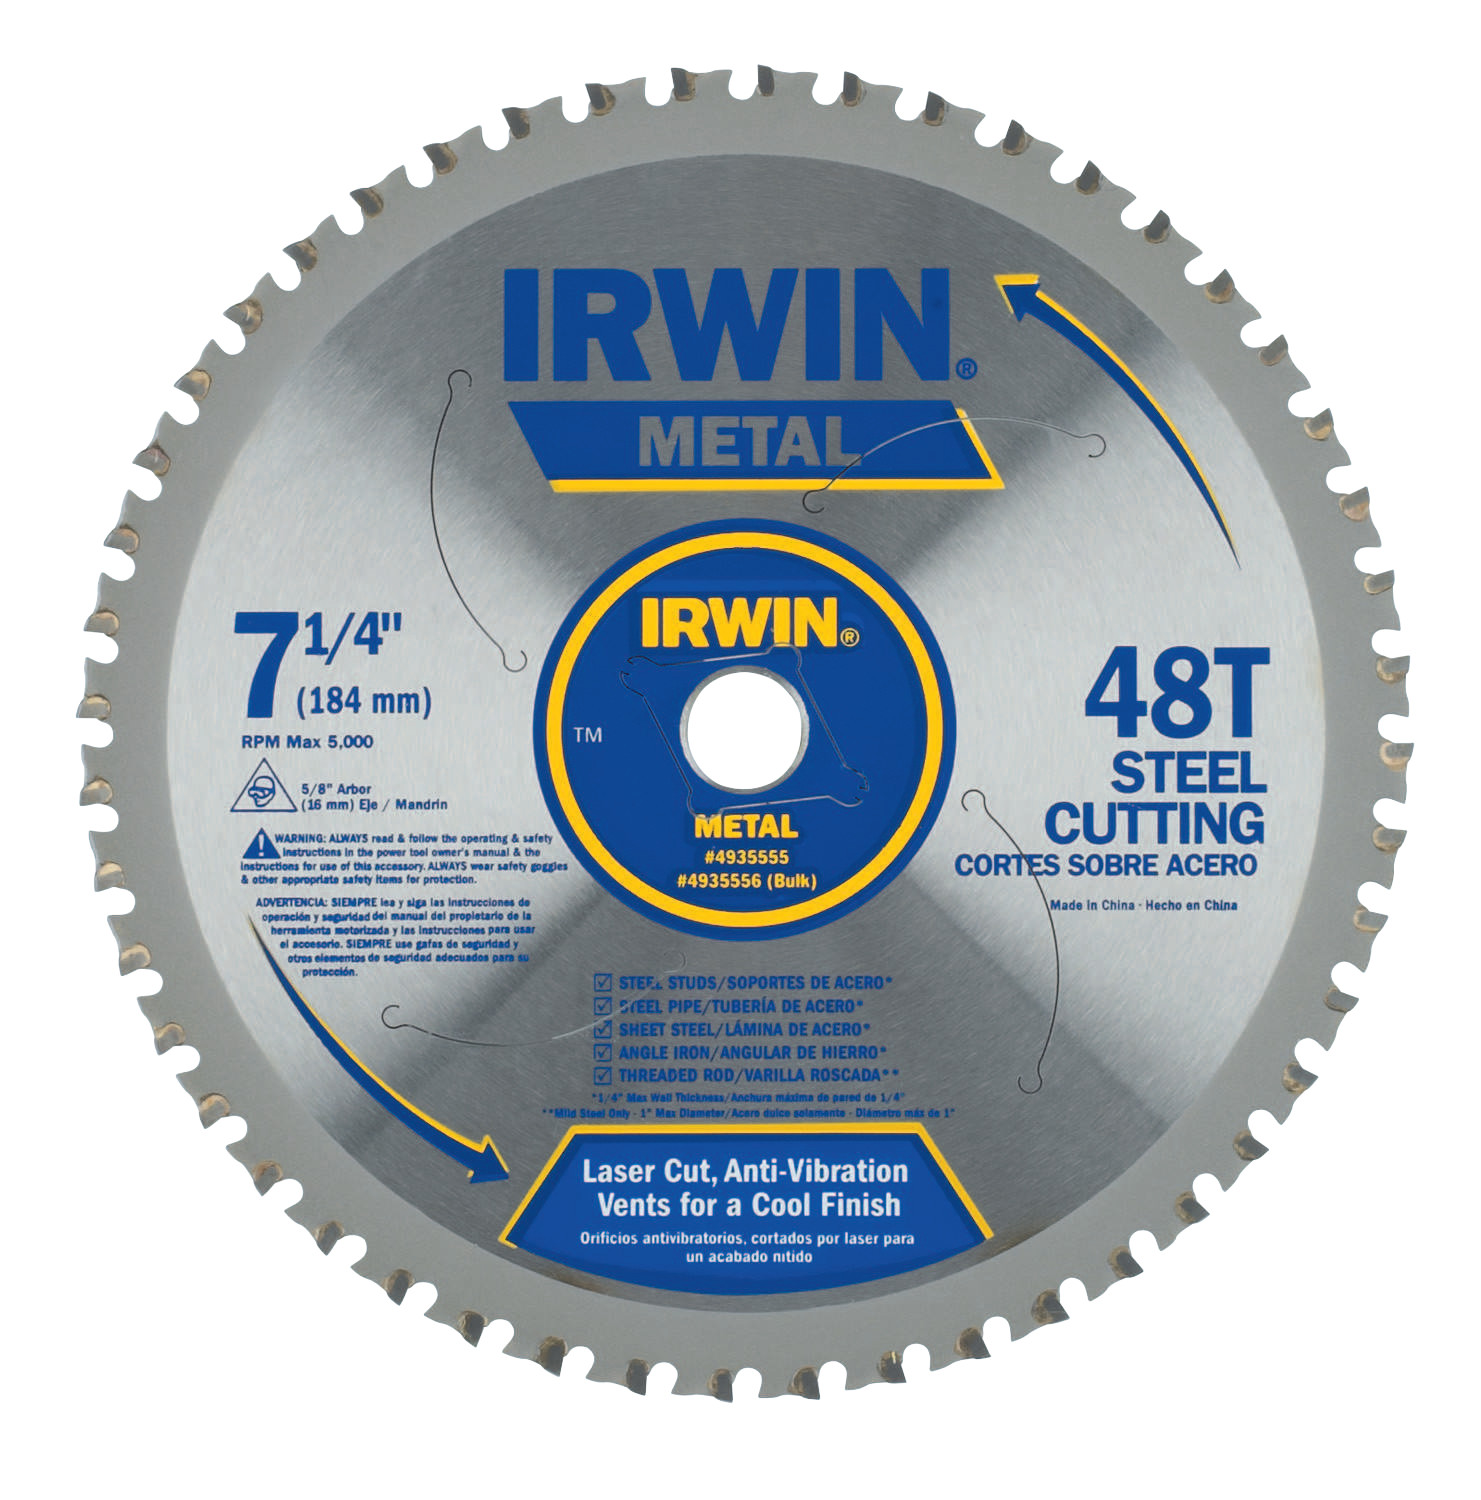 Irwin Metal Cutting Blades, 7 1/4 in, 48 Teeth, 5/PK